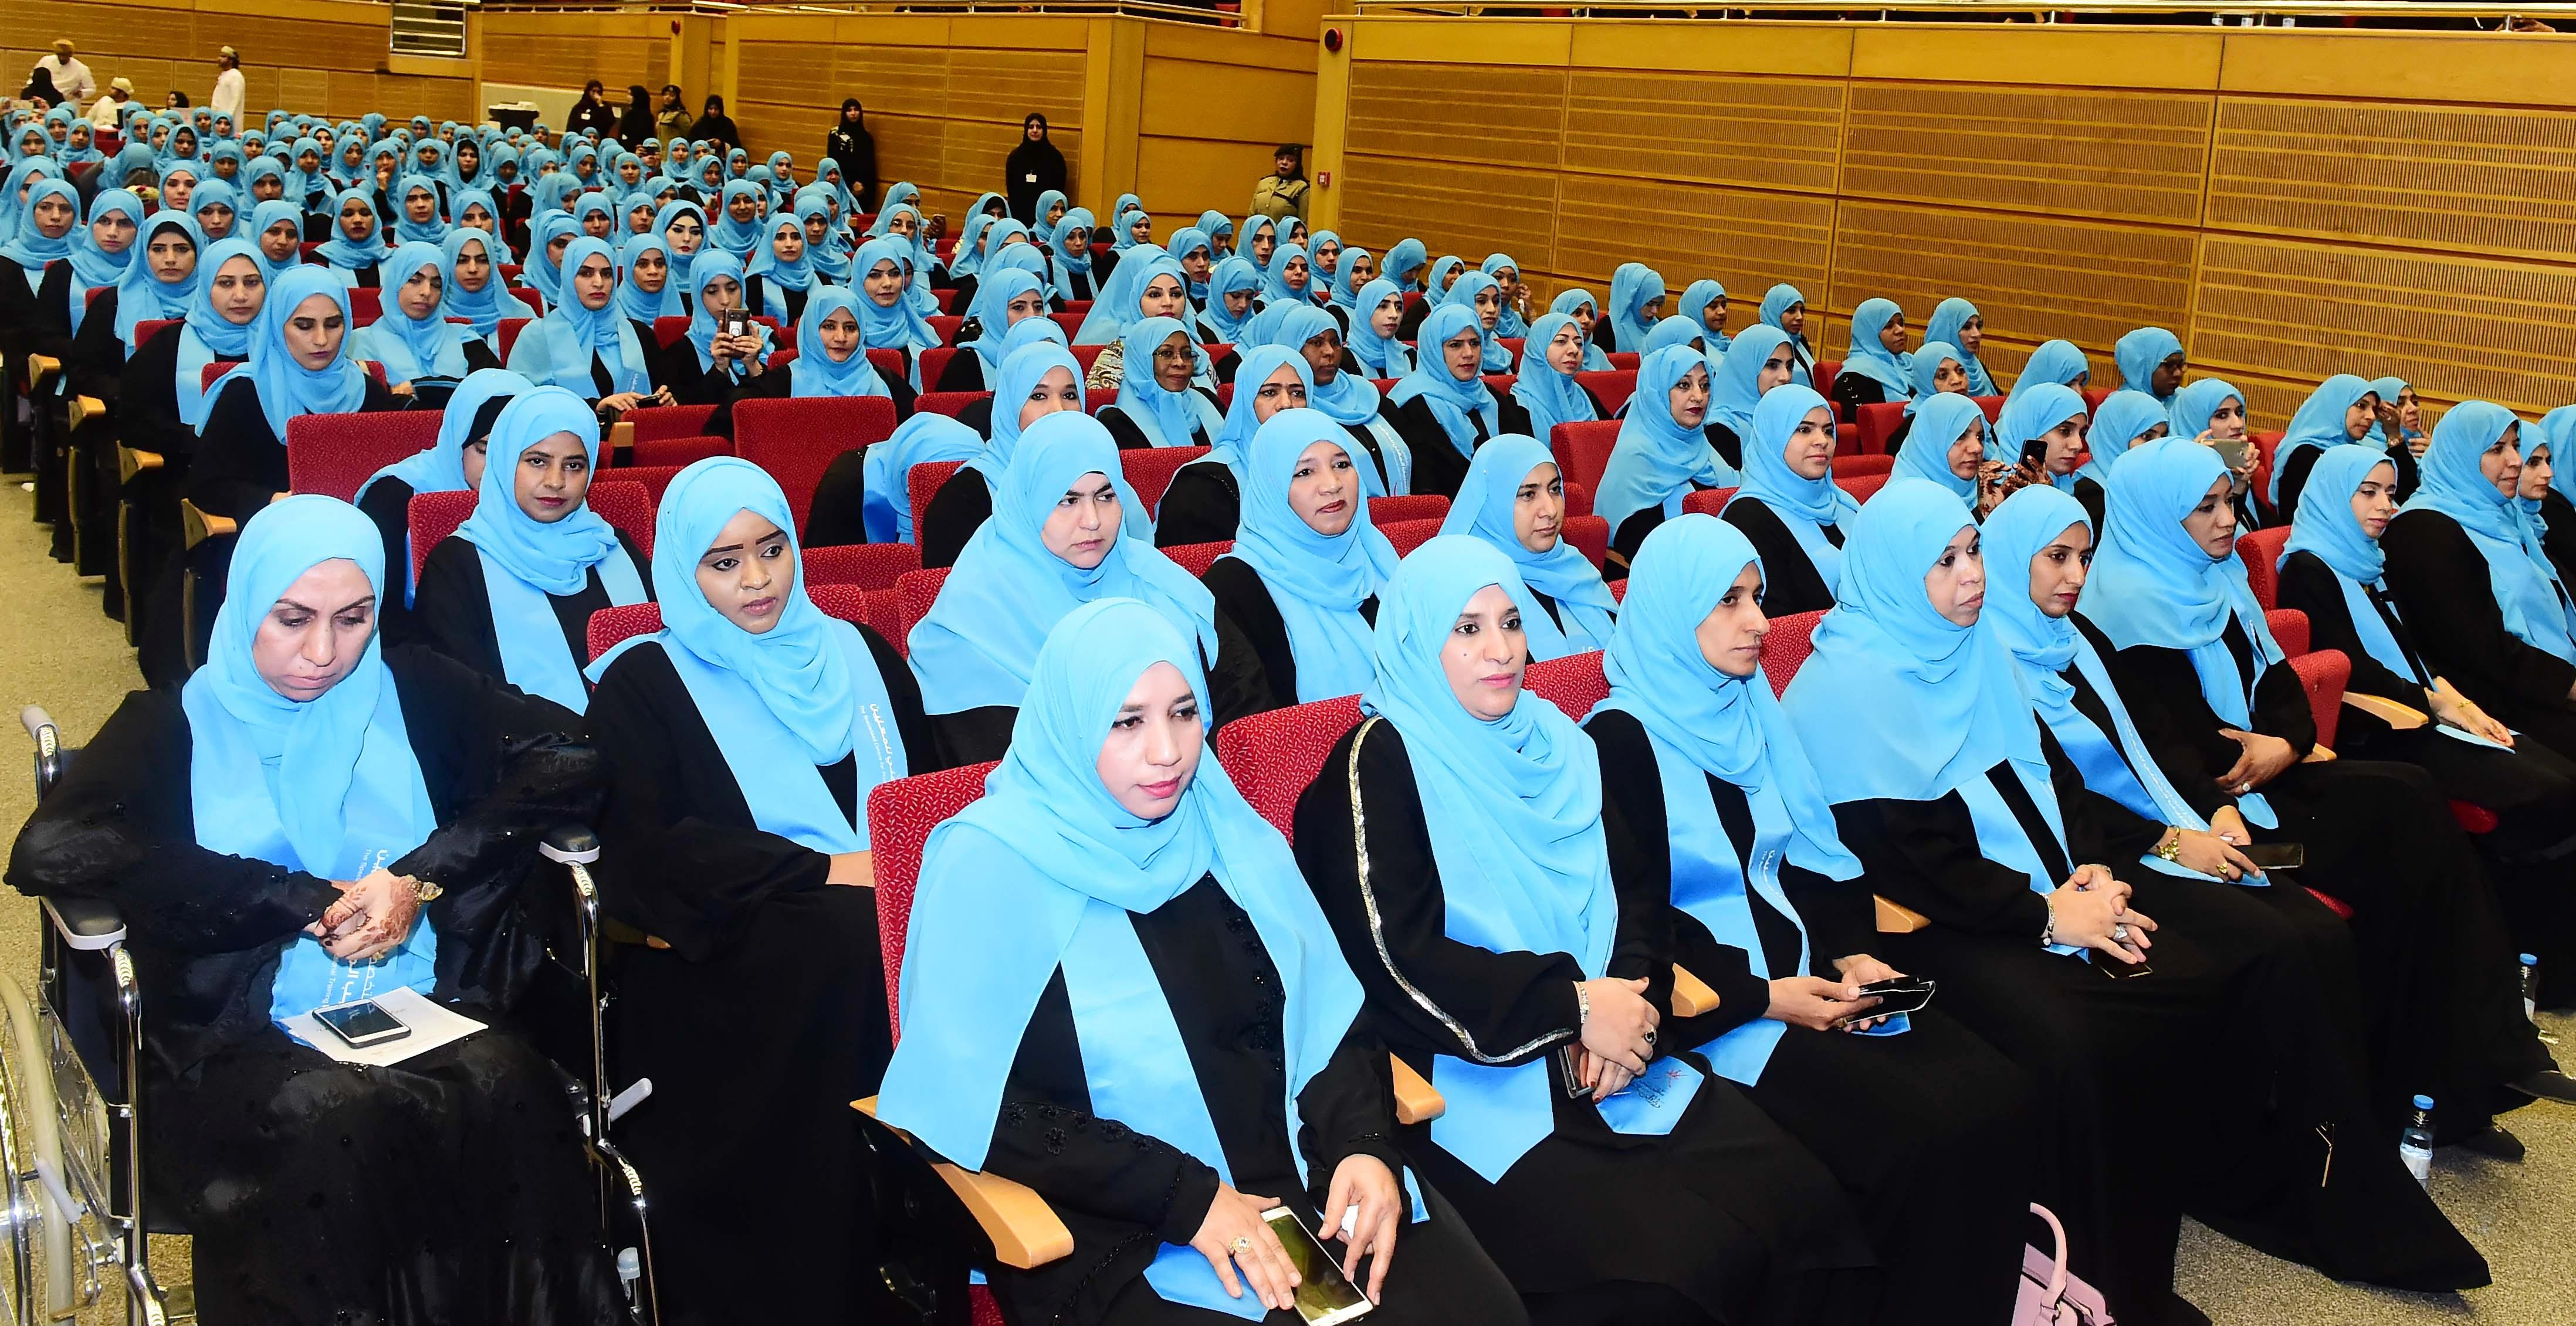 Ministry celebrates as more than 1,800 teachers complete training